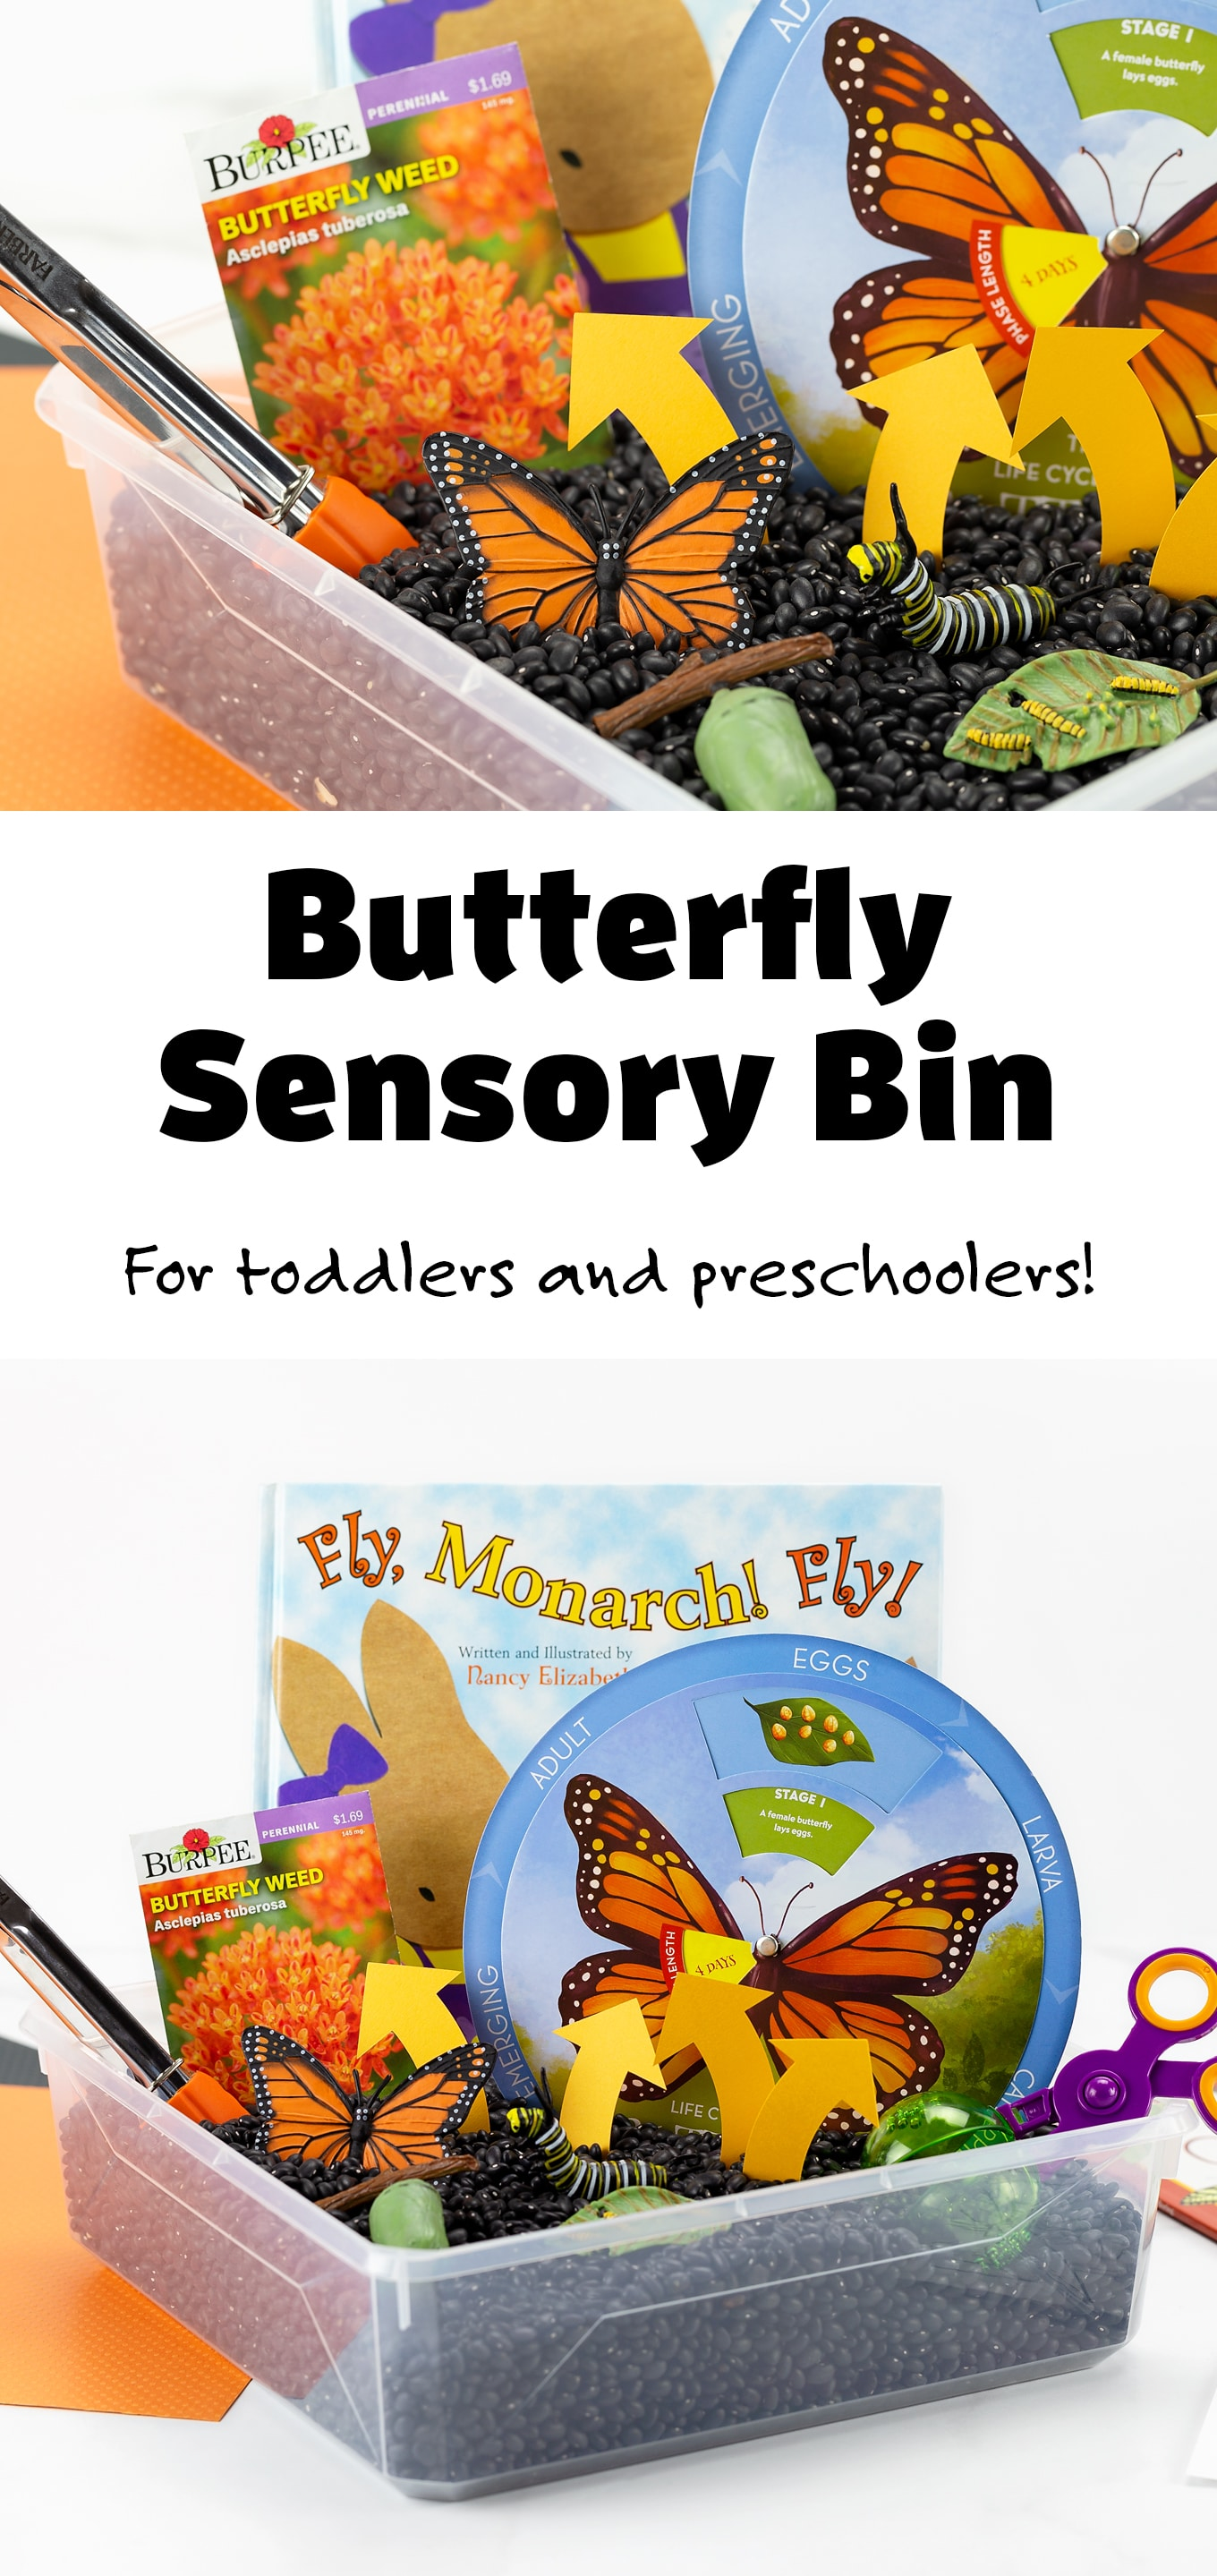 Invite kids to explore how a butterfly changes and grows throughout its lifetime with this hands-on Life Cycle of a Butterfly Activity! #lifecycleofabutterfly #activities #preschool #sensorybin #butterflyactivity via @firefliesandmudpies